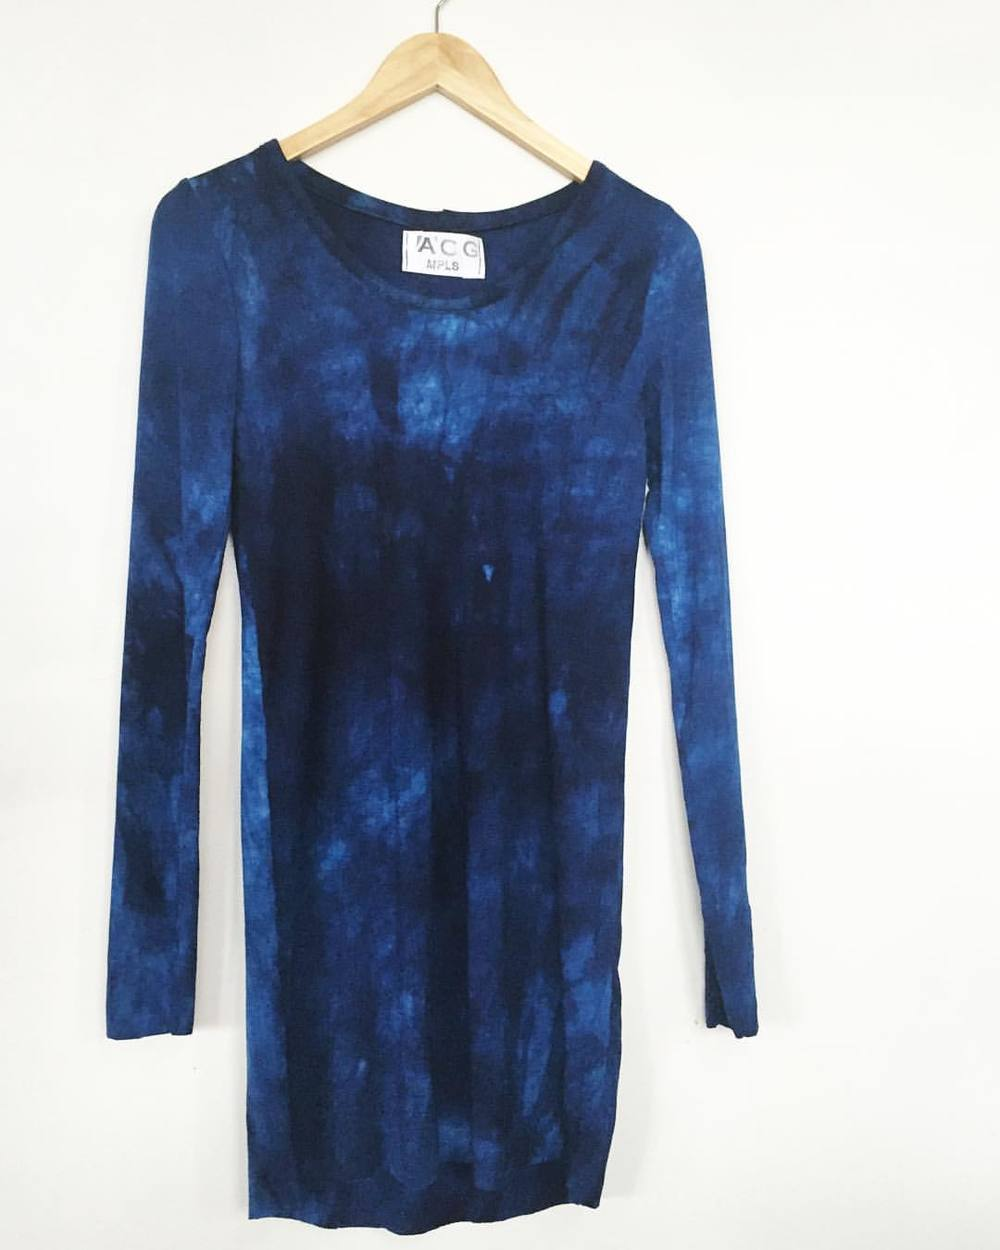 Indigo Long Tee- these are flying off the rack, and we are loving the watery depth of the handdyed indigo color. head to gallery 360 in Minneapolis, or dm us to order yours 💙💙 #handdyed #indigo #longsleeve #independentdesign #slowfashion #aw15 #fw15 #layers #staywarm